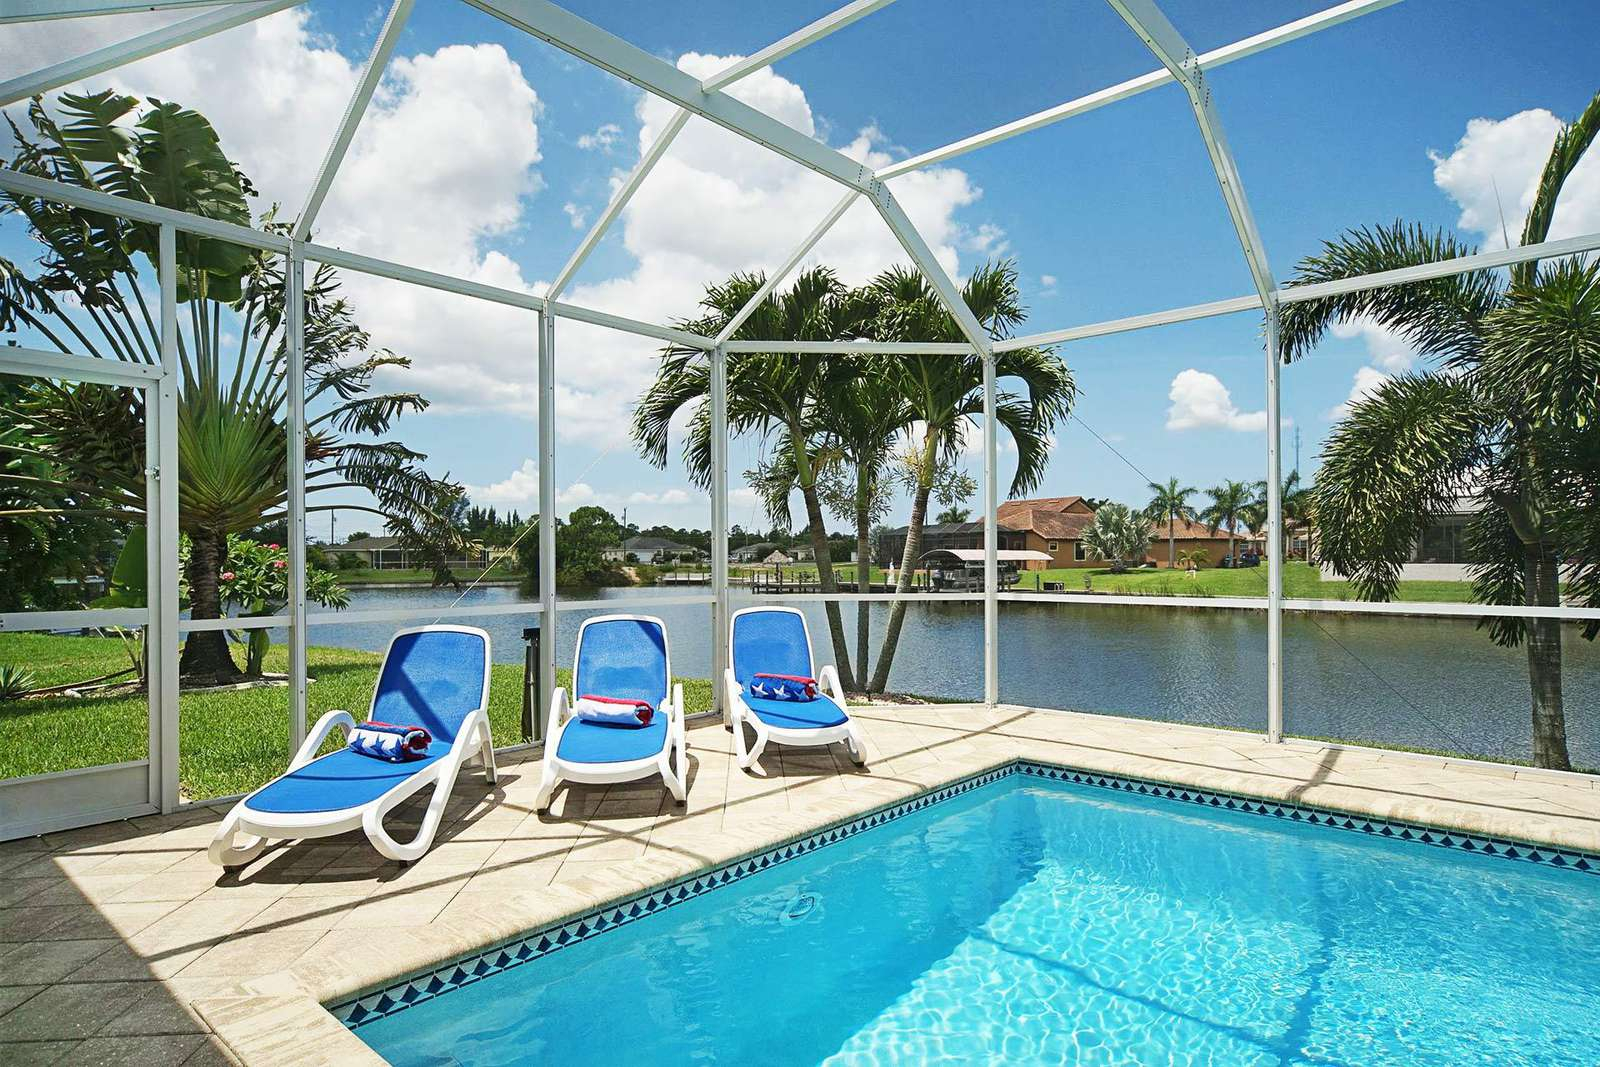 Florida Home - Vacation Rentals Cape Coral I Property Management I Real Estate